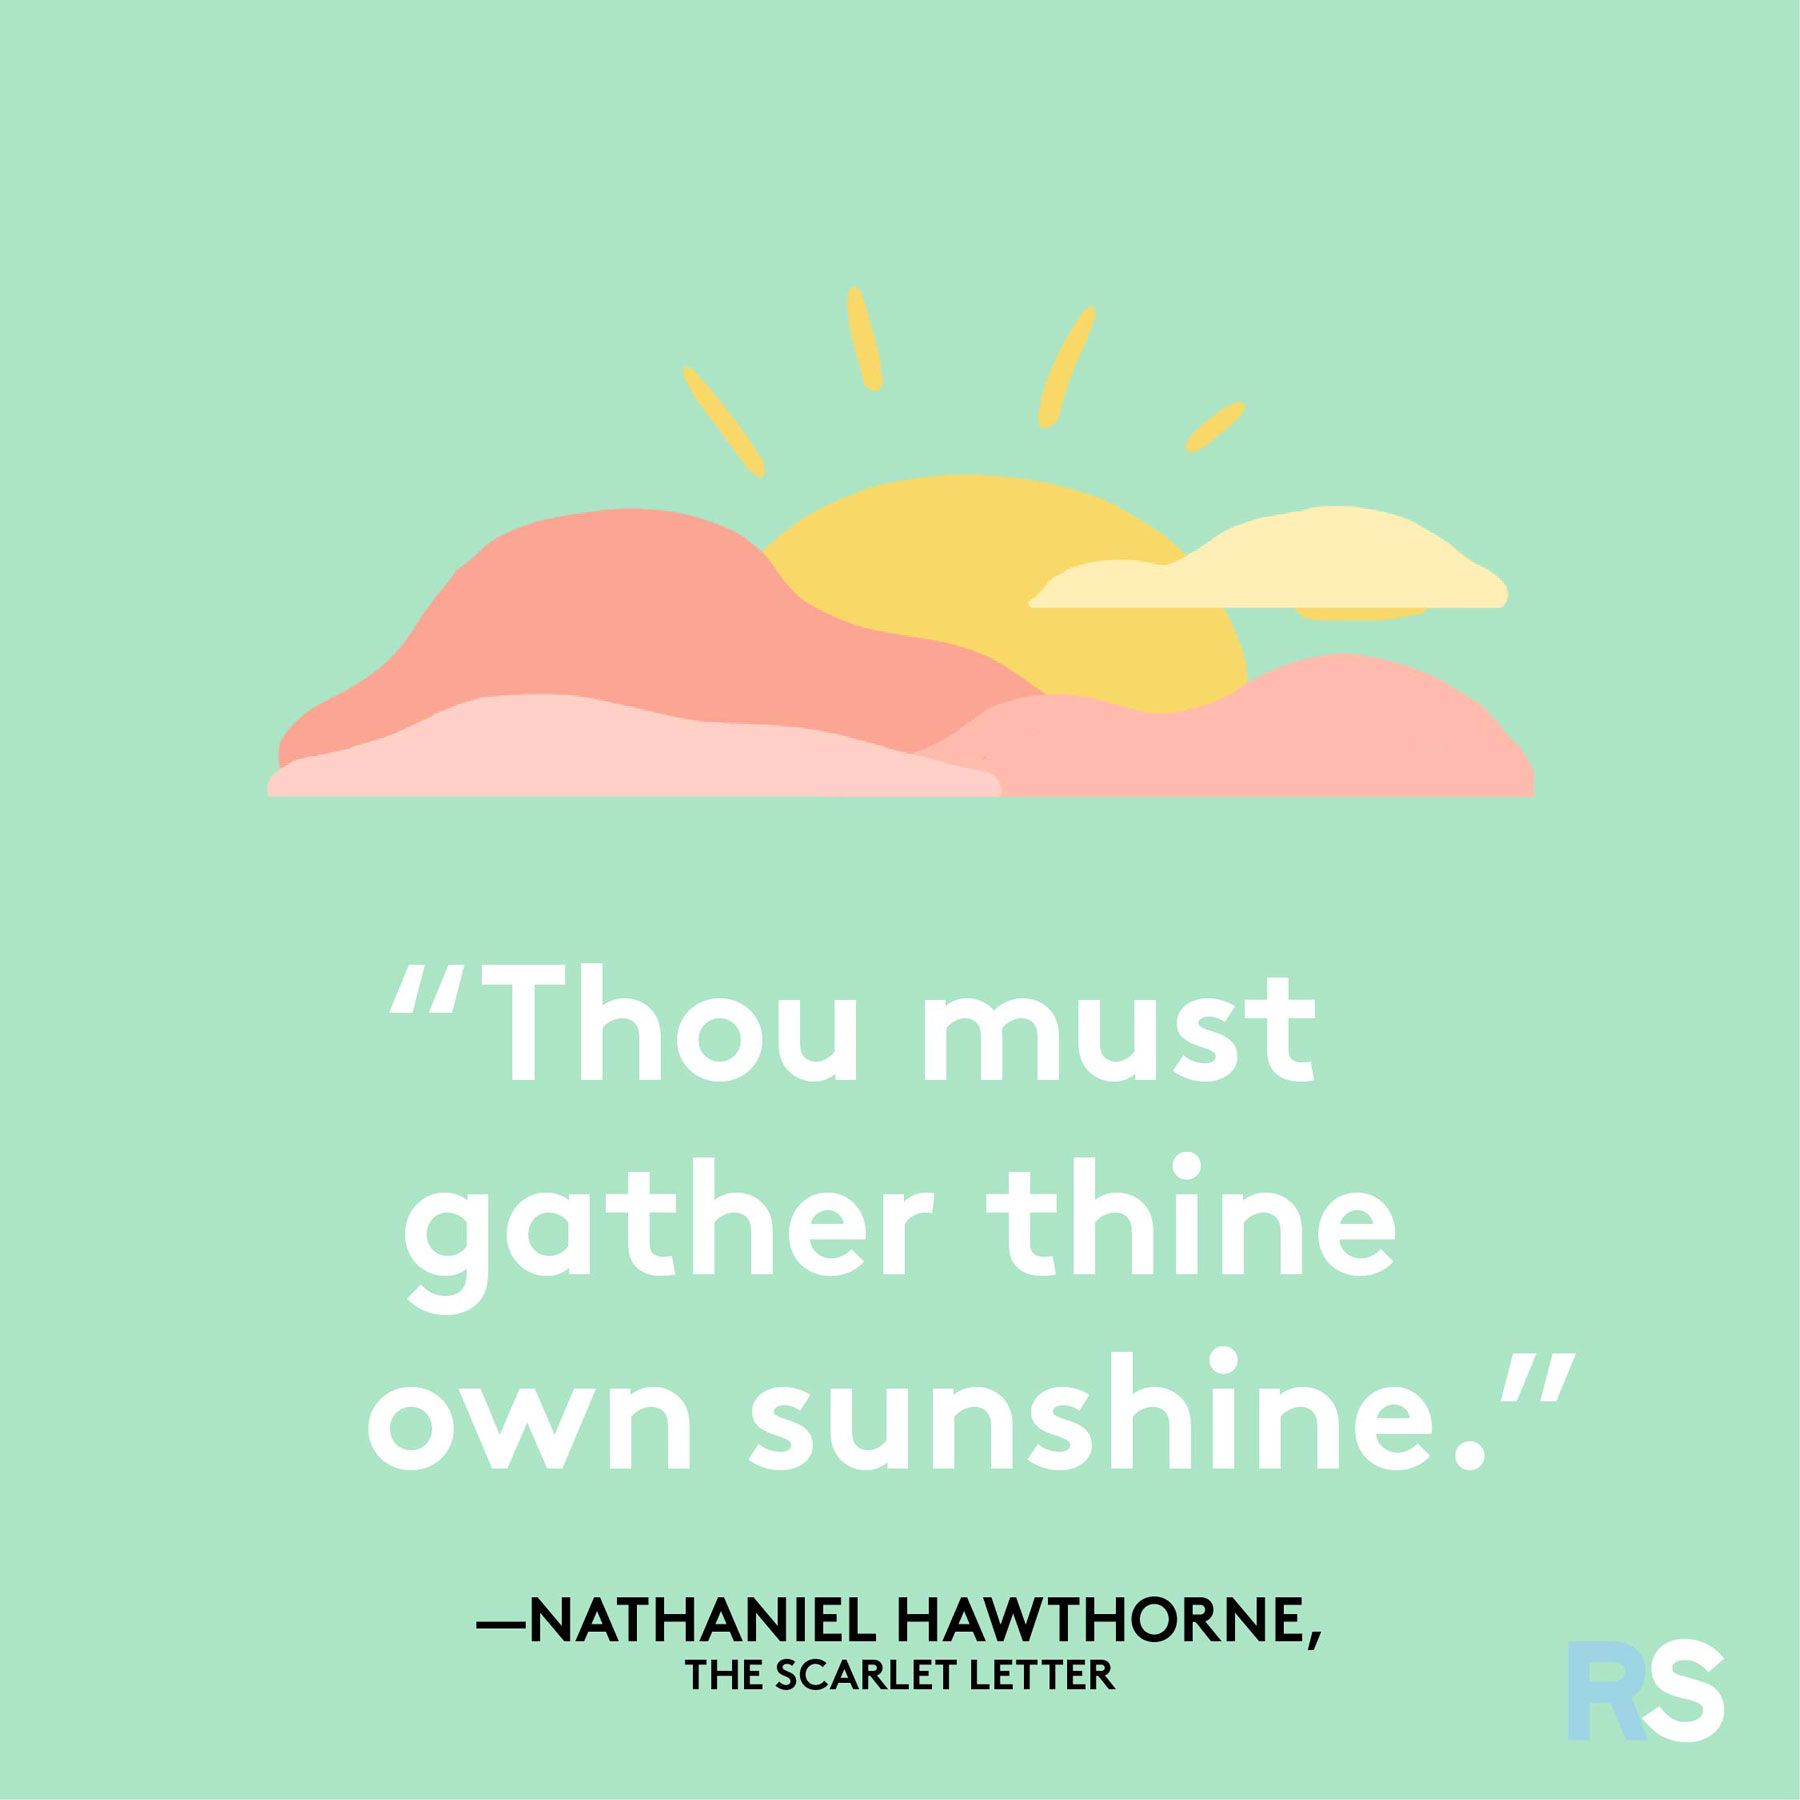 Positive motivating quotes, captions, messages – Nathaniel Hawthorne, The Scarlet Letter quote